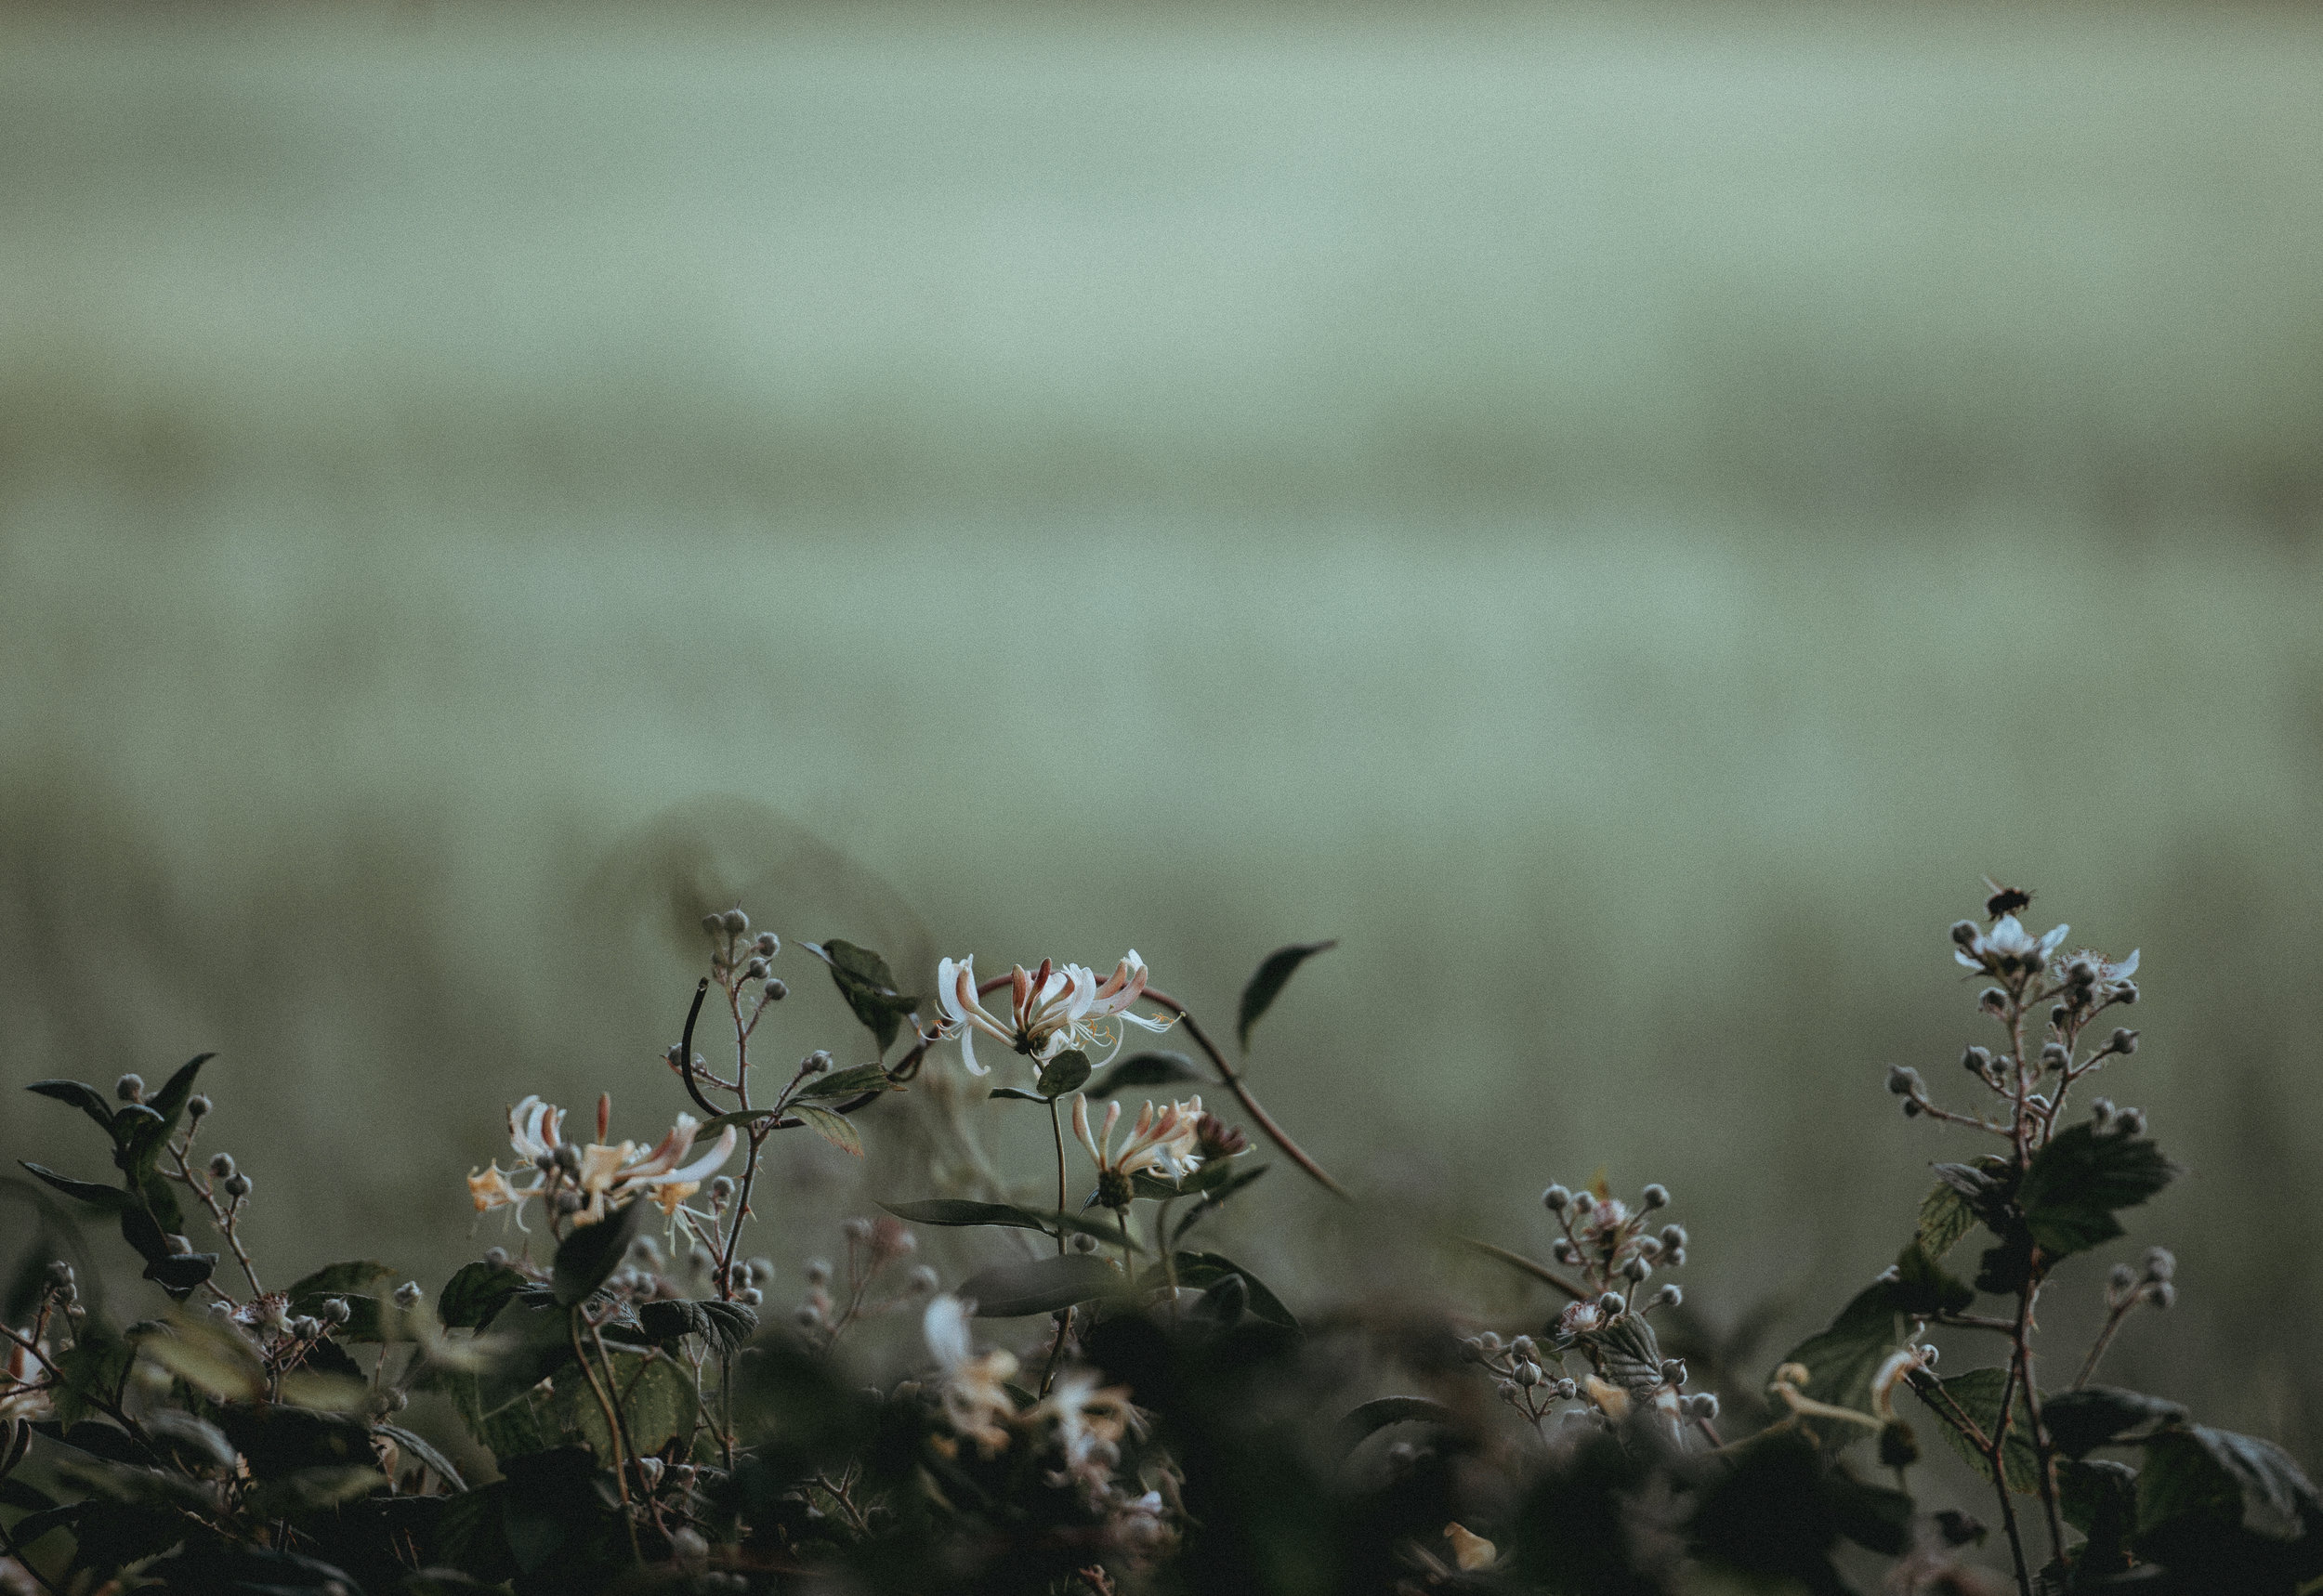 Honeysuckle by Moonlight - the essential vitality of fresh plants